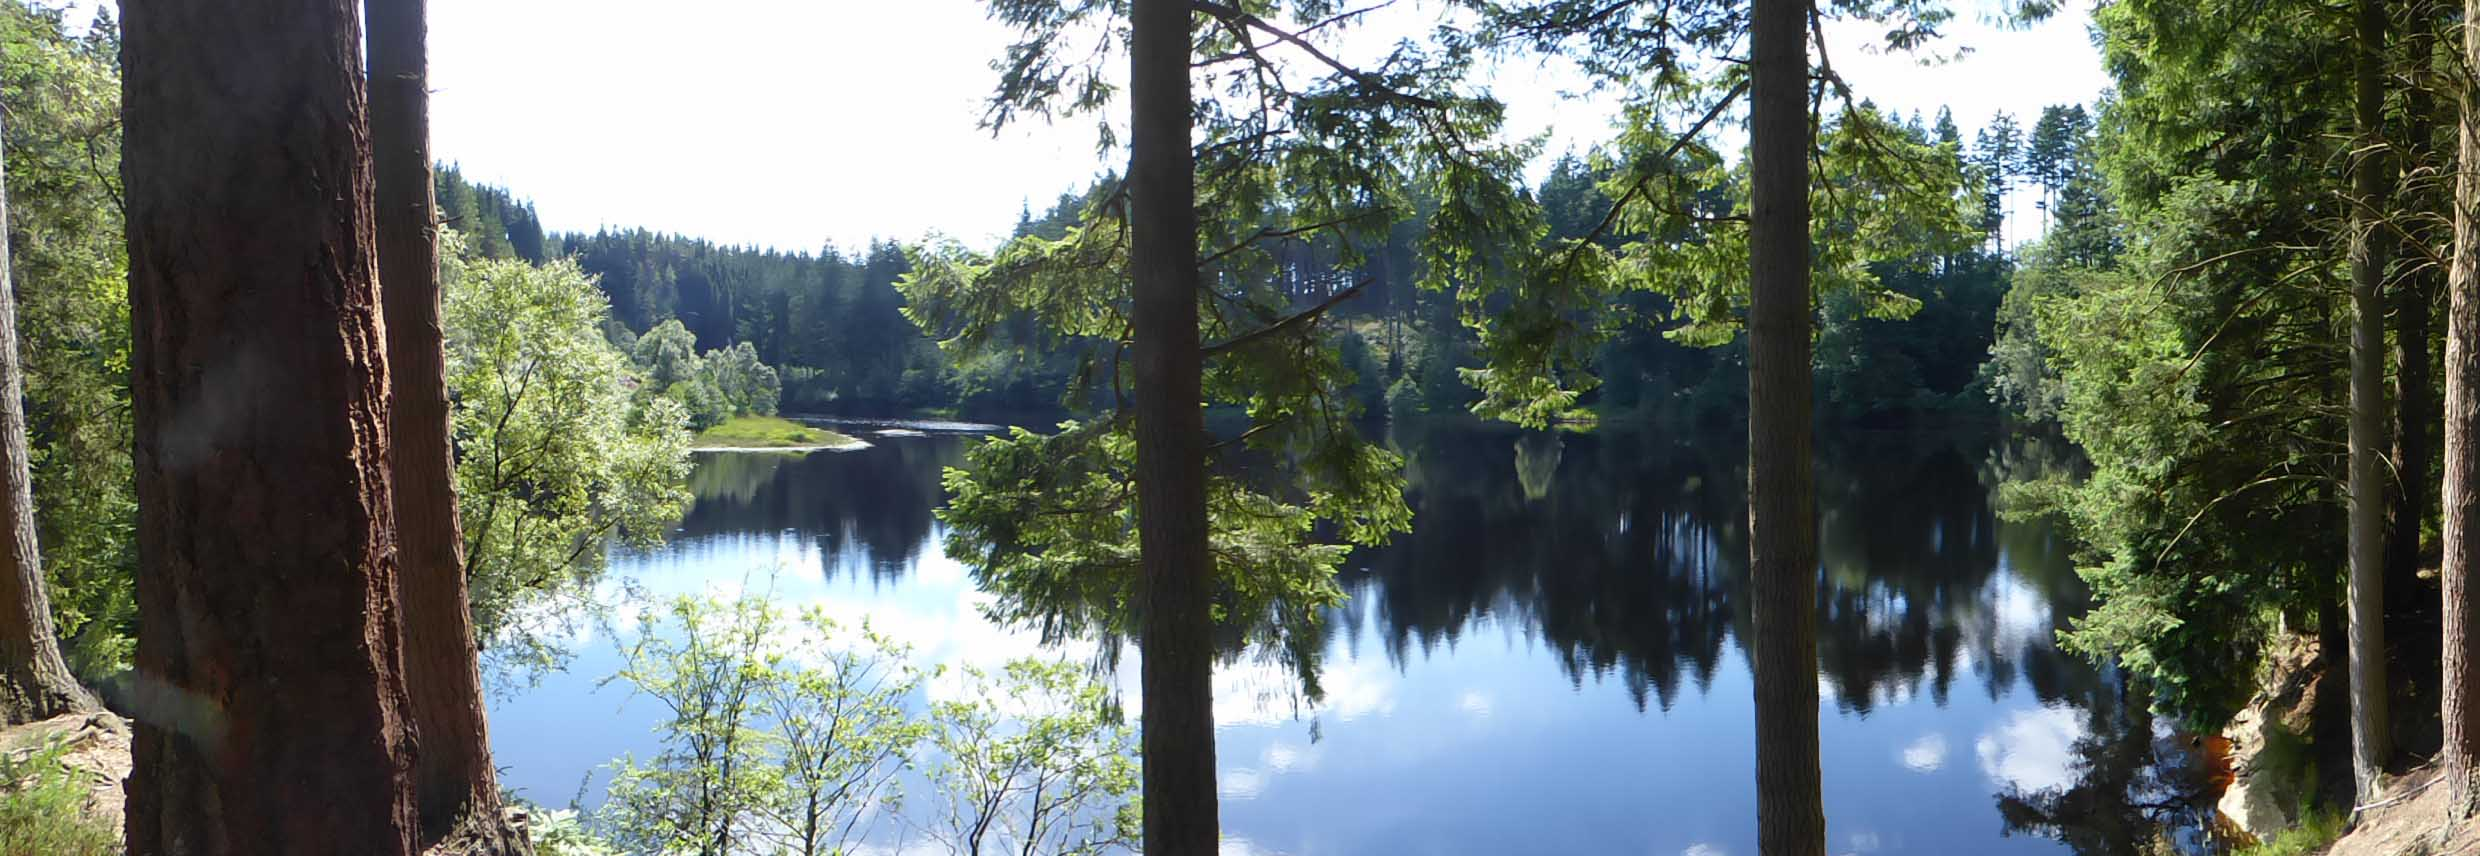 Panoramic shot of tall tree trunks with water beyond